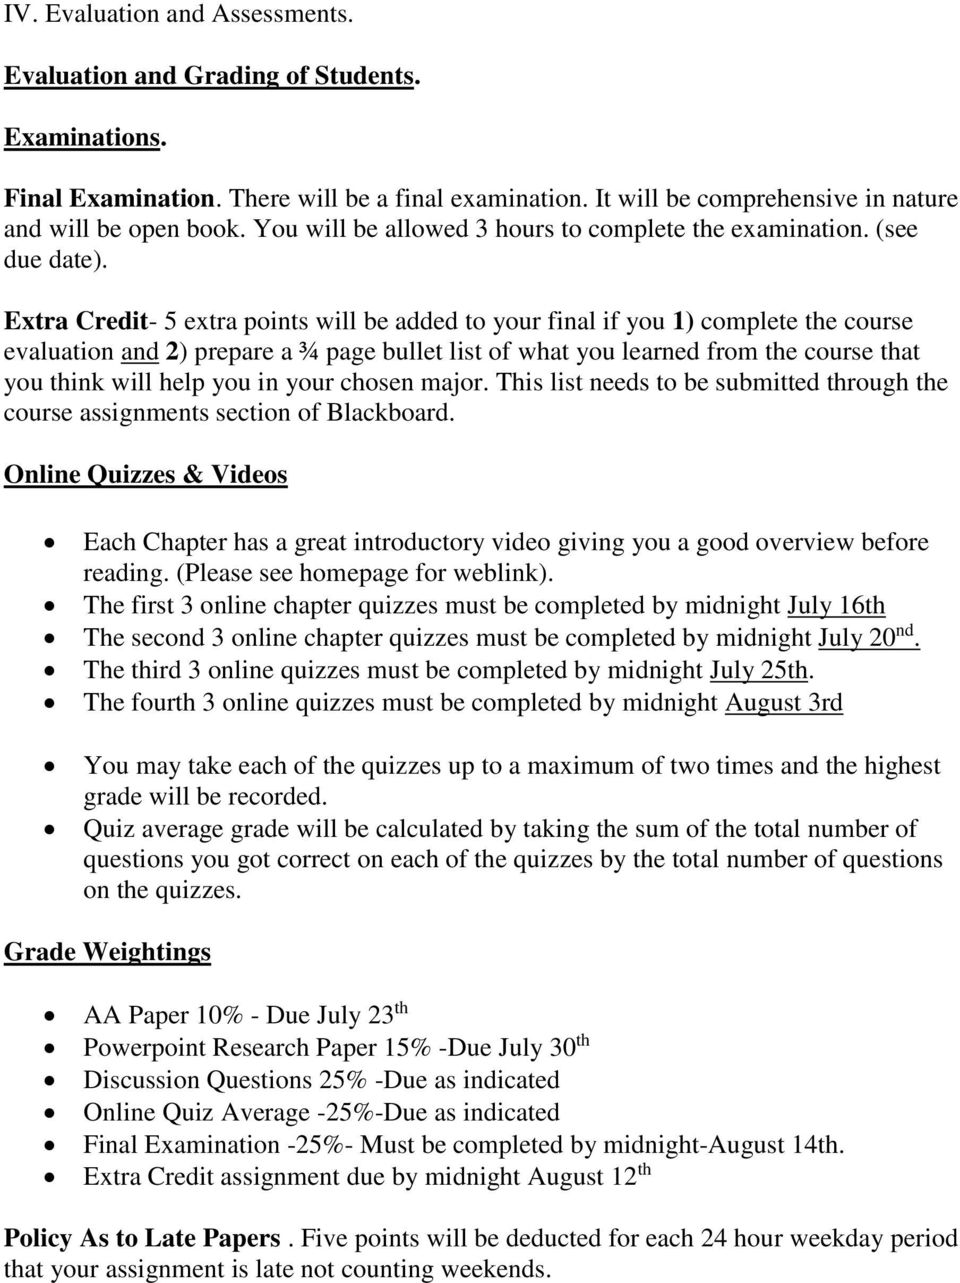 Extra Credit- 5 extra points will be added to your final if you 1) complete the course evaluation and 2) prepare a ¾ page bullet list of what you learned from the course that you think will help you